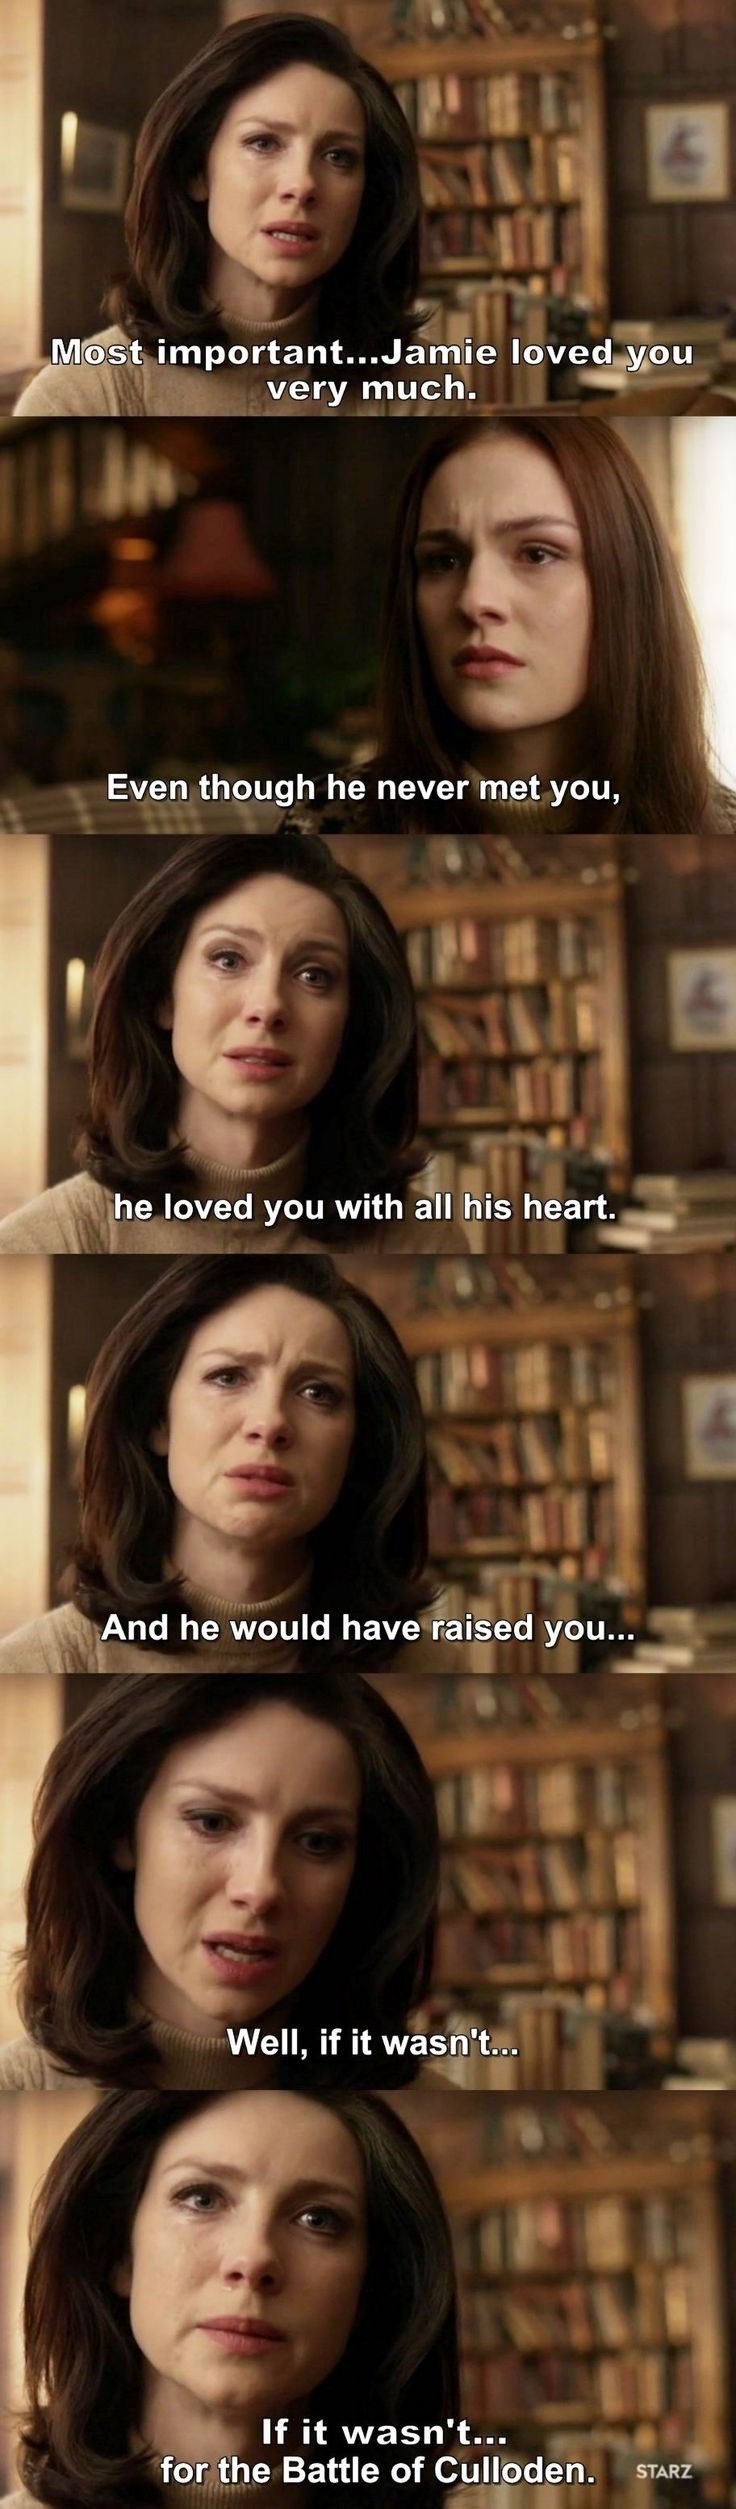 """""""Even though he never met you, he loved you with all his heart"""" - Claire and Brianna #Outlander"""